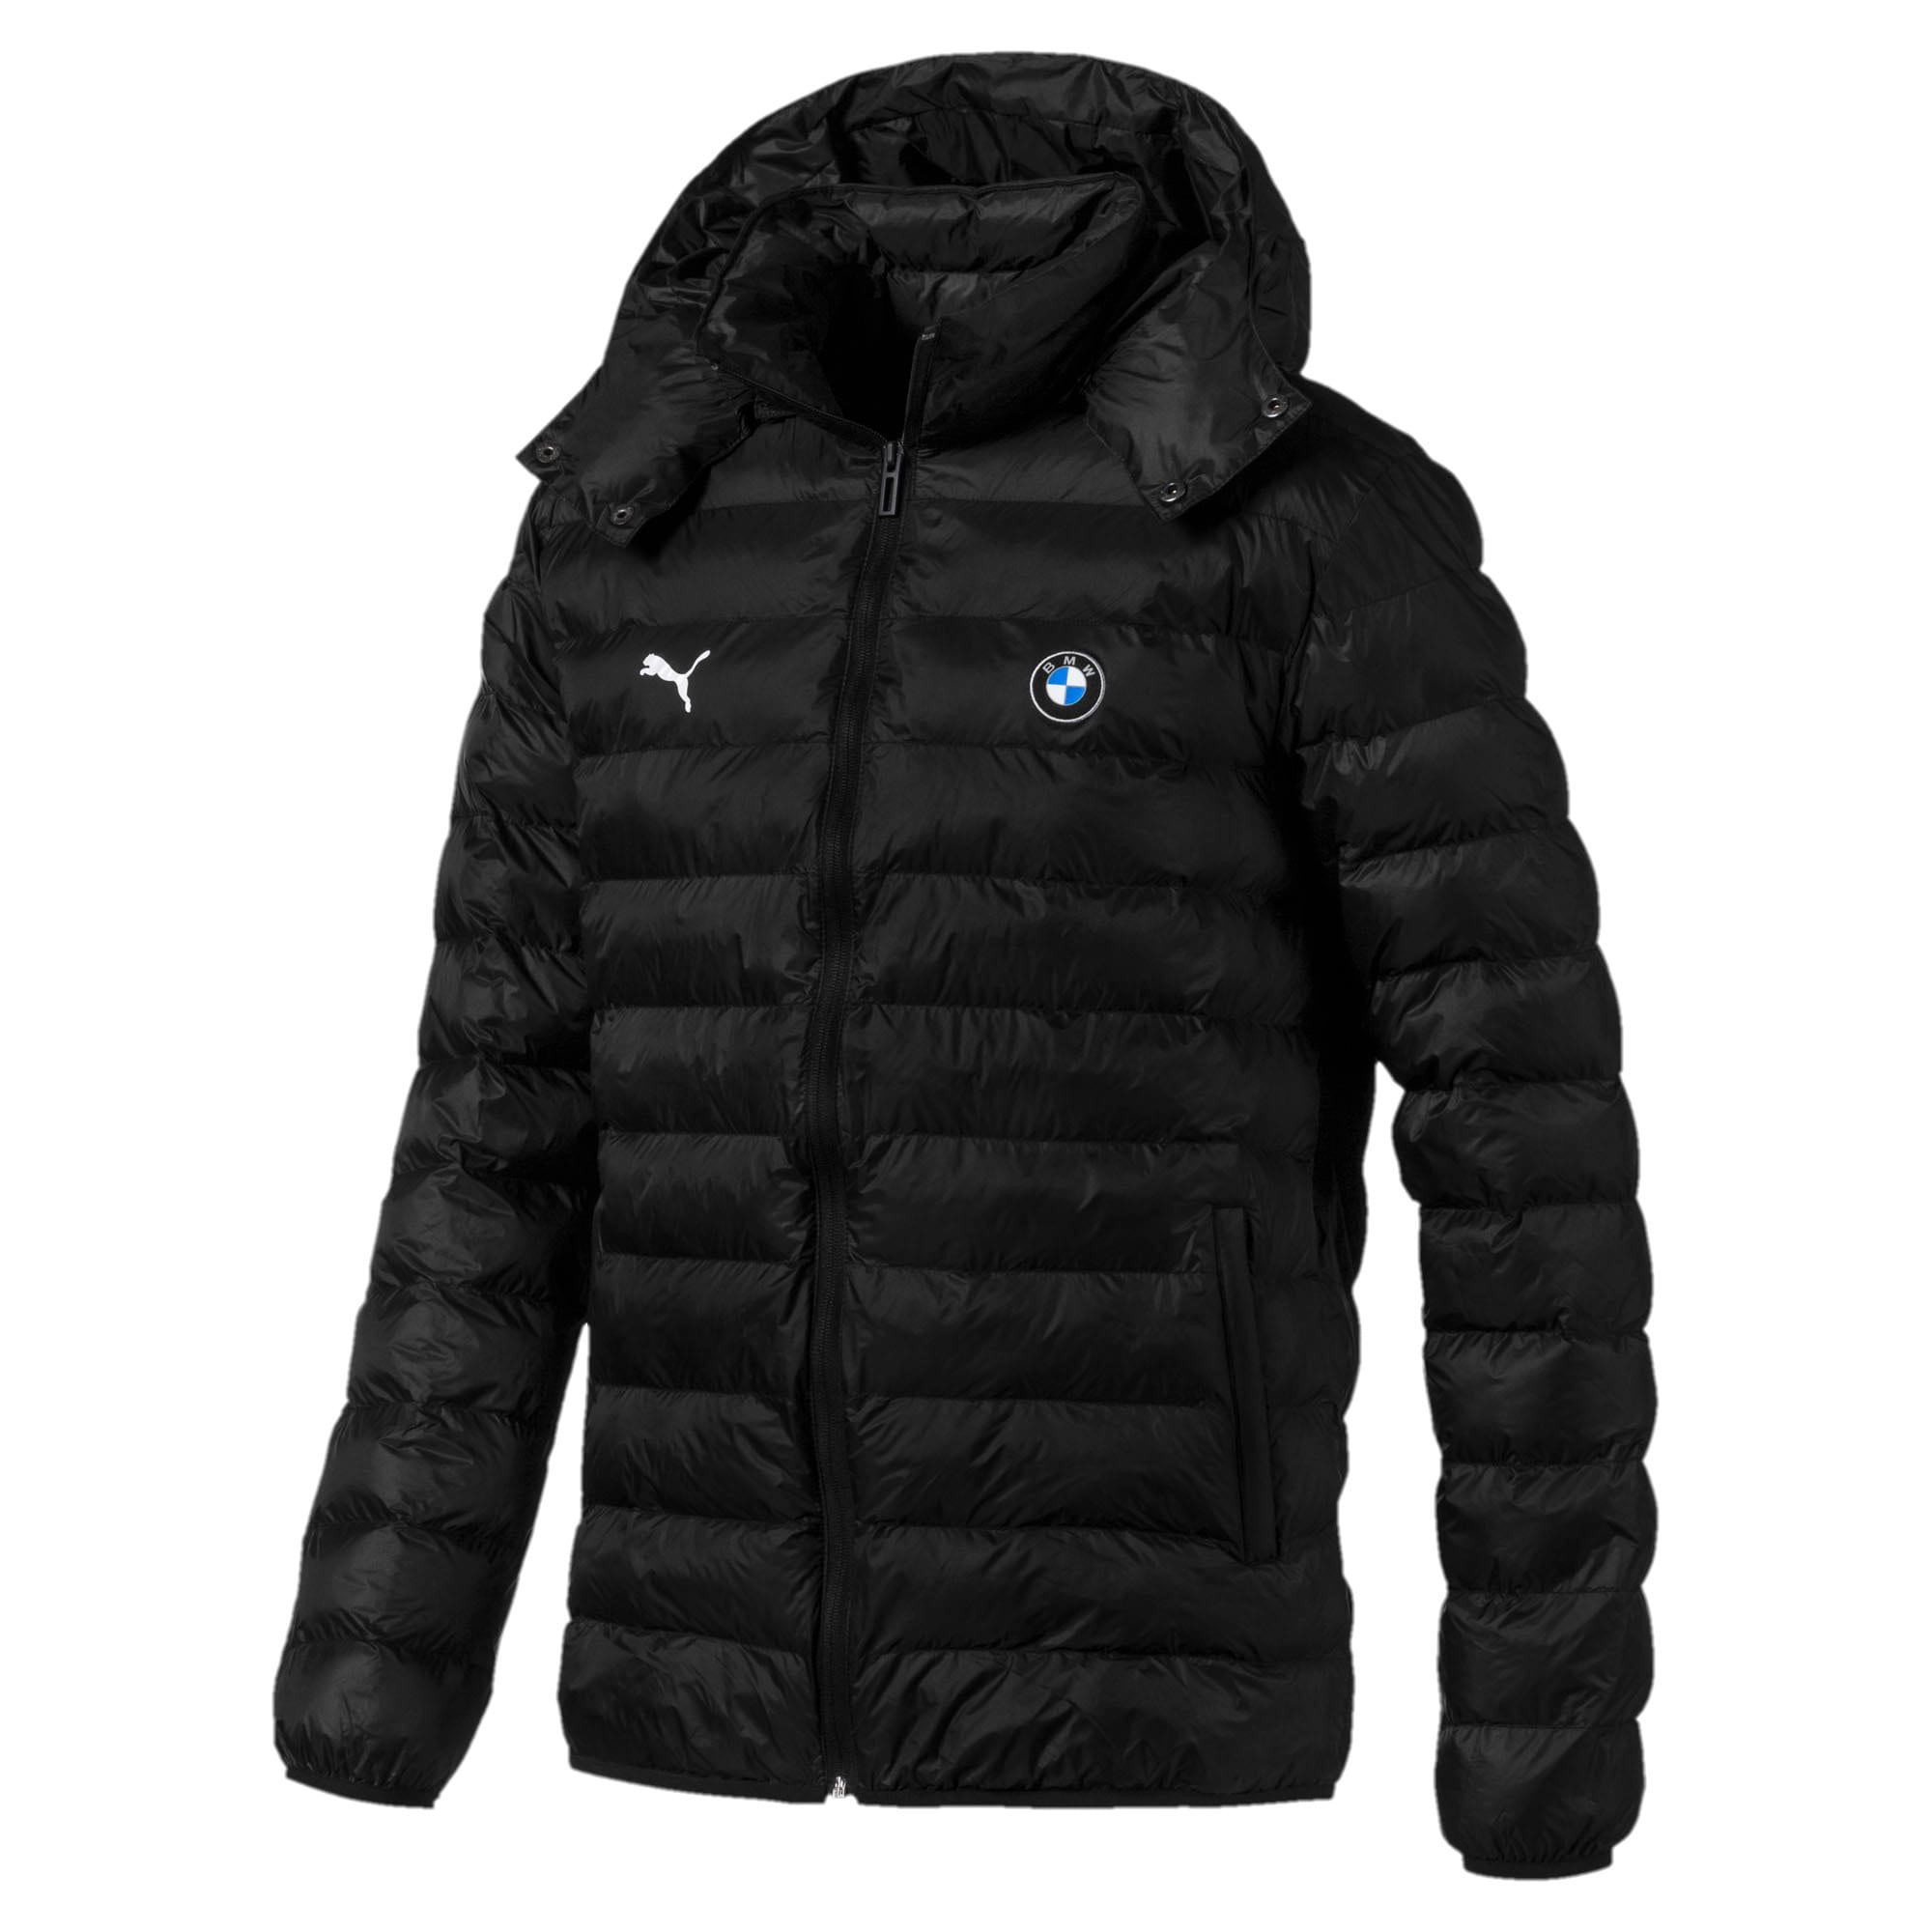 BMW Motorsport Eco PackLite Men's Jacket, Puma Black, large